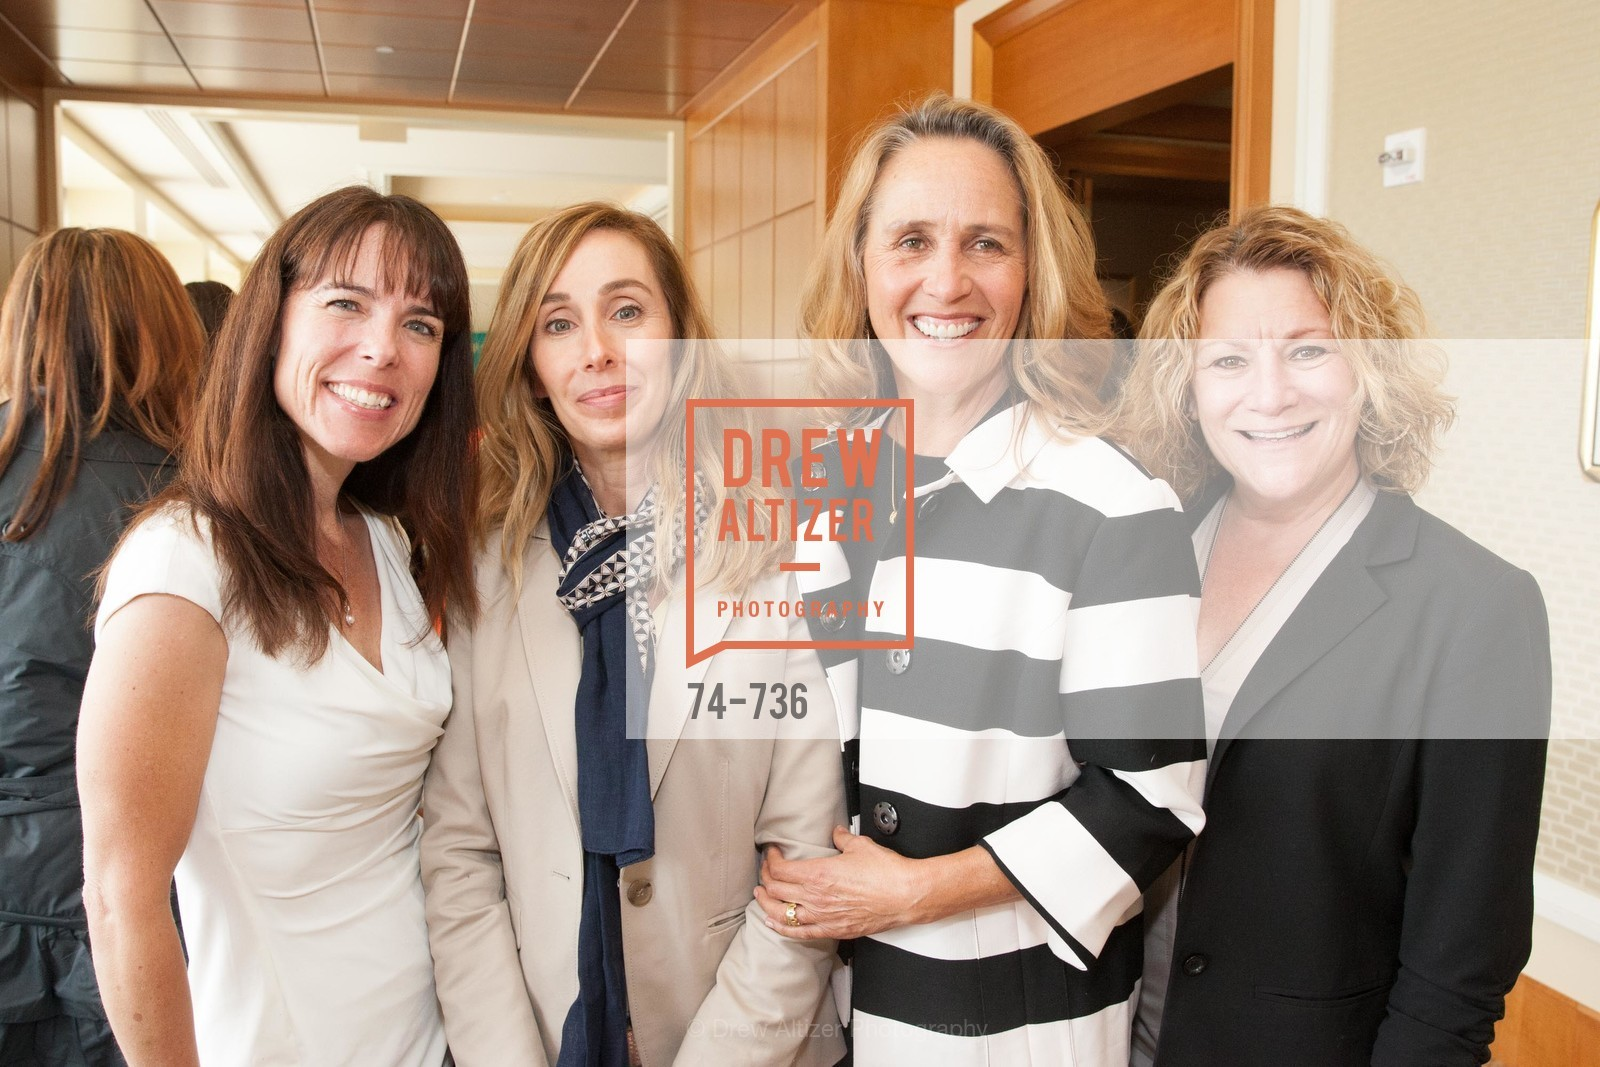 Stephanie Skaff, Annie Hurwitz, Michelle Skaff, Terrie Cosgrove, USF Women in Leadership and Philanthropy Luncheon With Julia Hartz, Co-Founder & President of EventBrite, US, May 15th, 2015,Drew Altizer, Drew Altizer Photography, full-service agency, private events, San Francisco photographer, photographer california